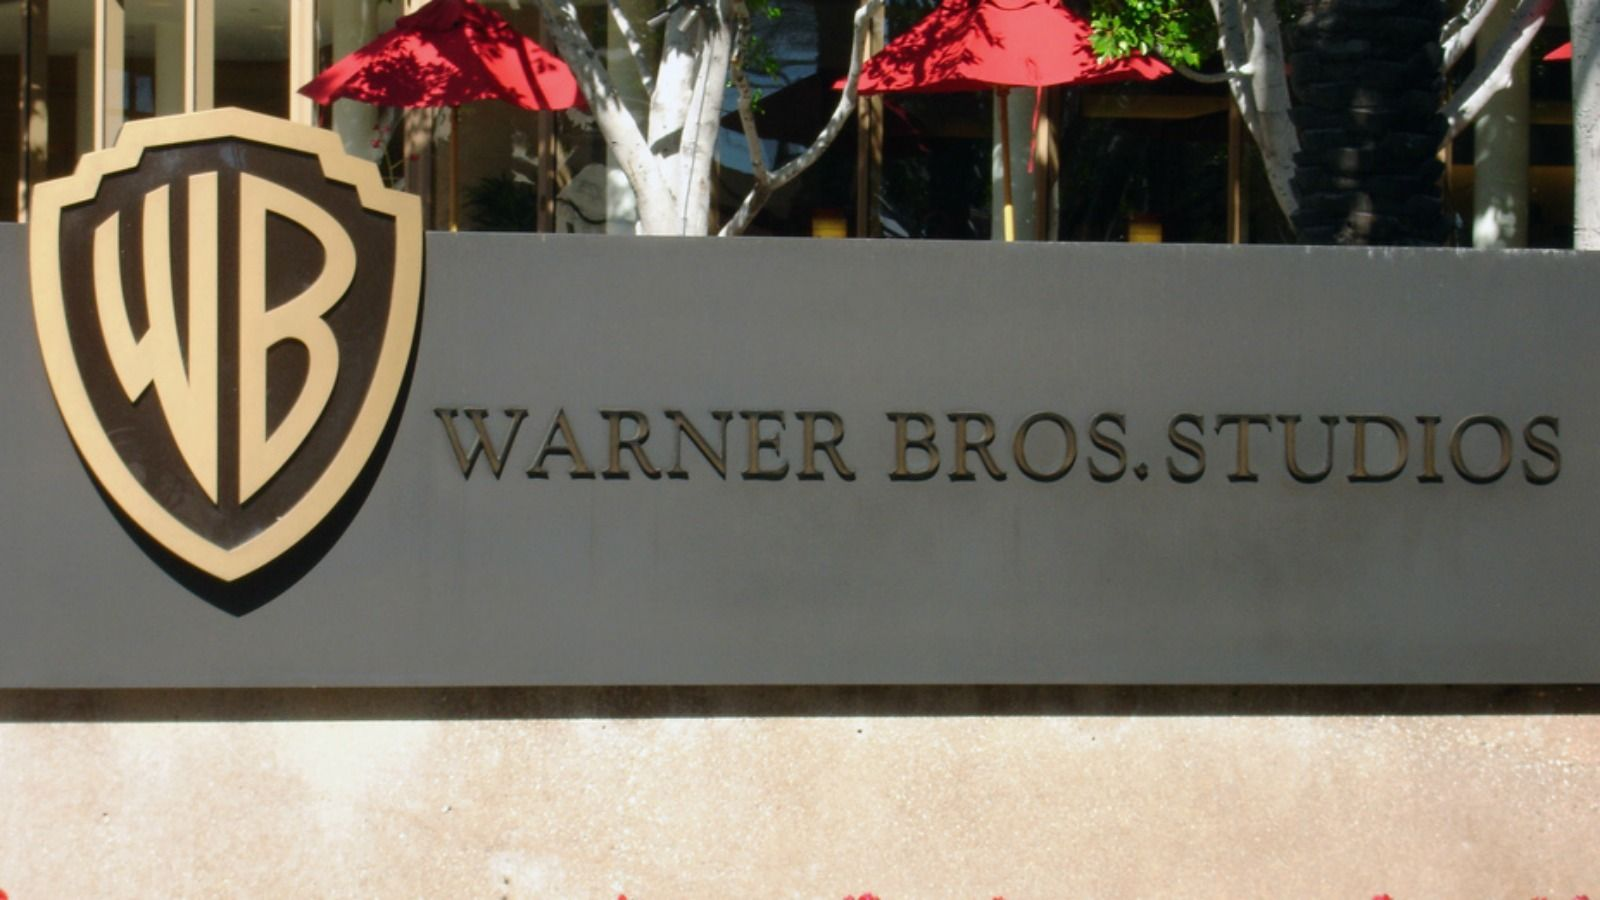 Things to do in Southern California - Warner Brothers Studios